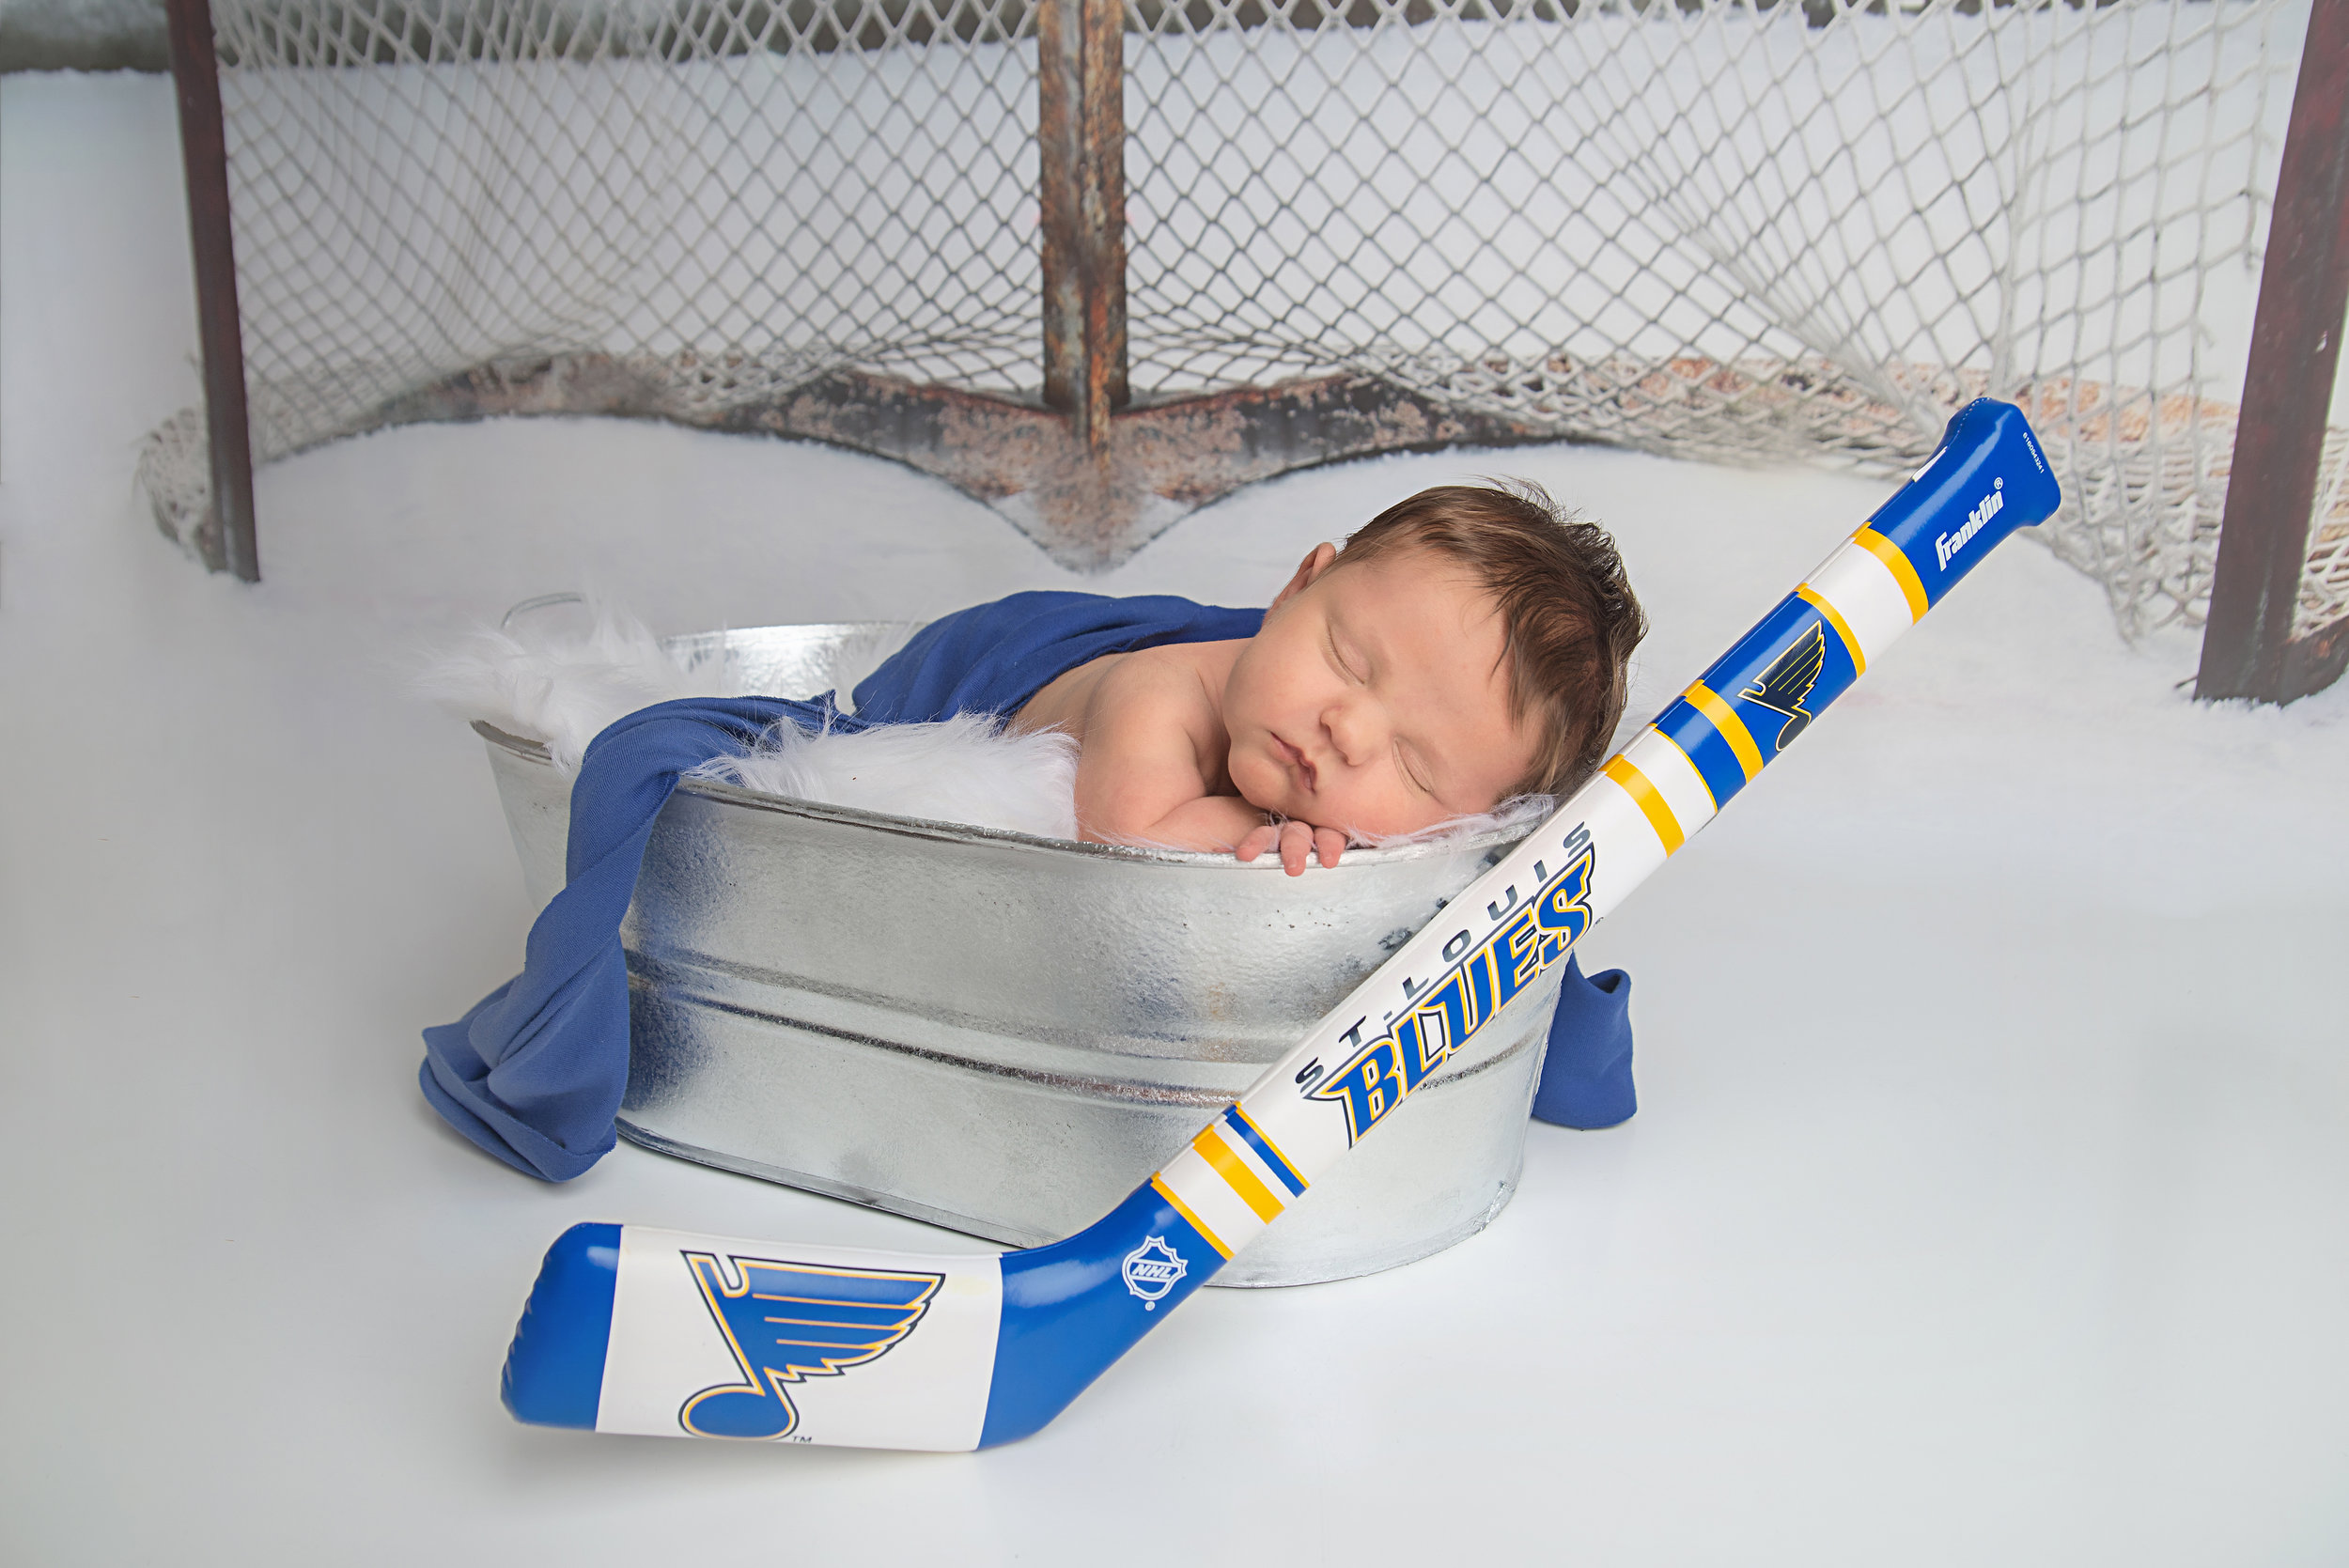 st-louis-newborn-photographer-baby-boy-with-st-louis-blues-hockey-and-hockey-net-backdrop.jpg